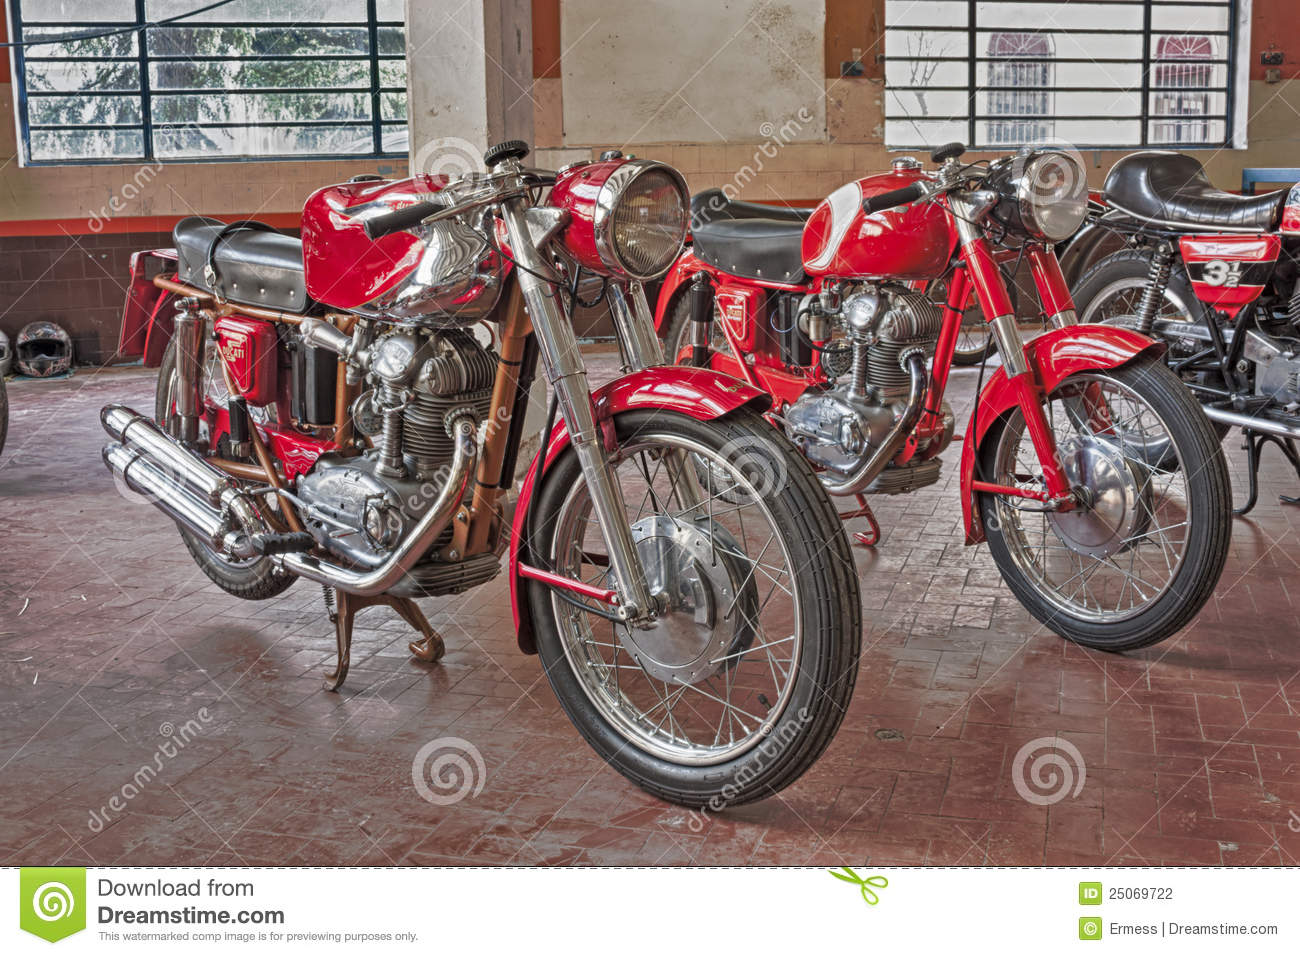 hight resolution of old motorcycles ducati